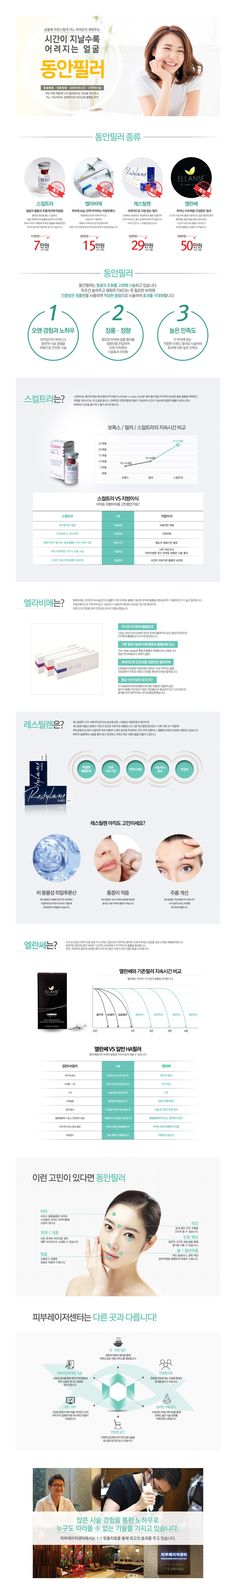 피부과 서브페이지 디자인 - subpage design for dermatology web site